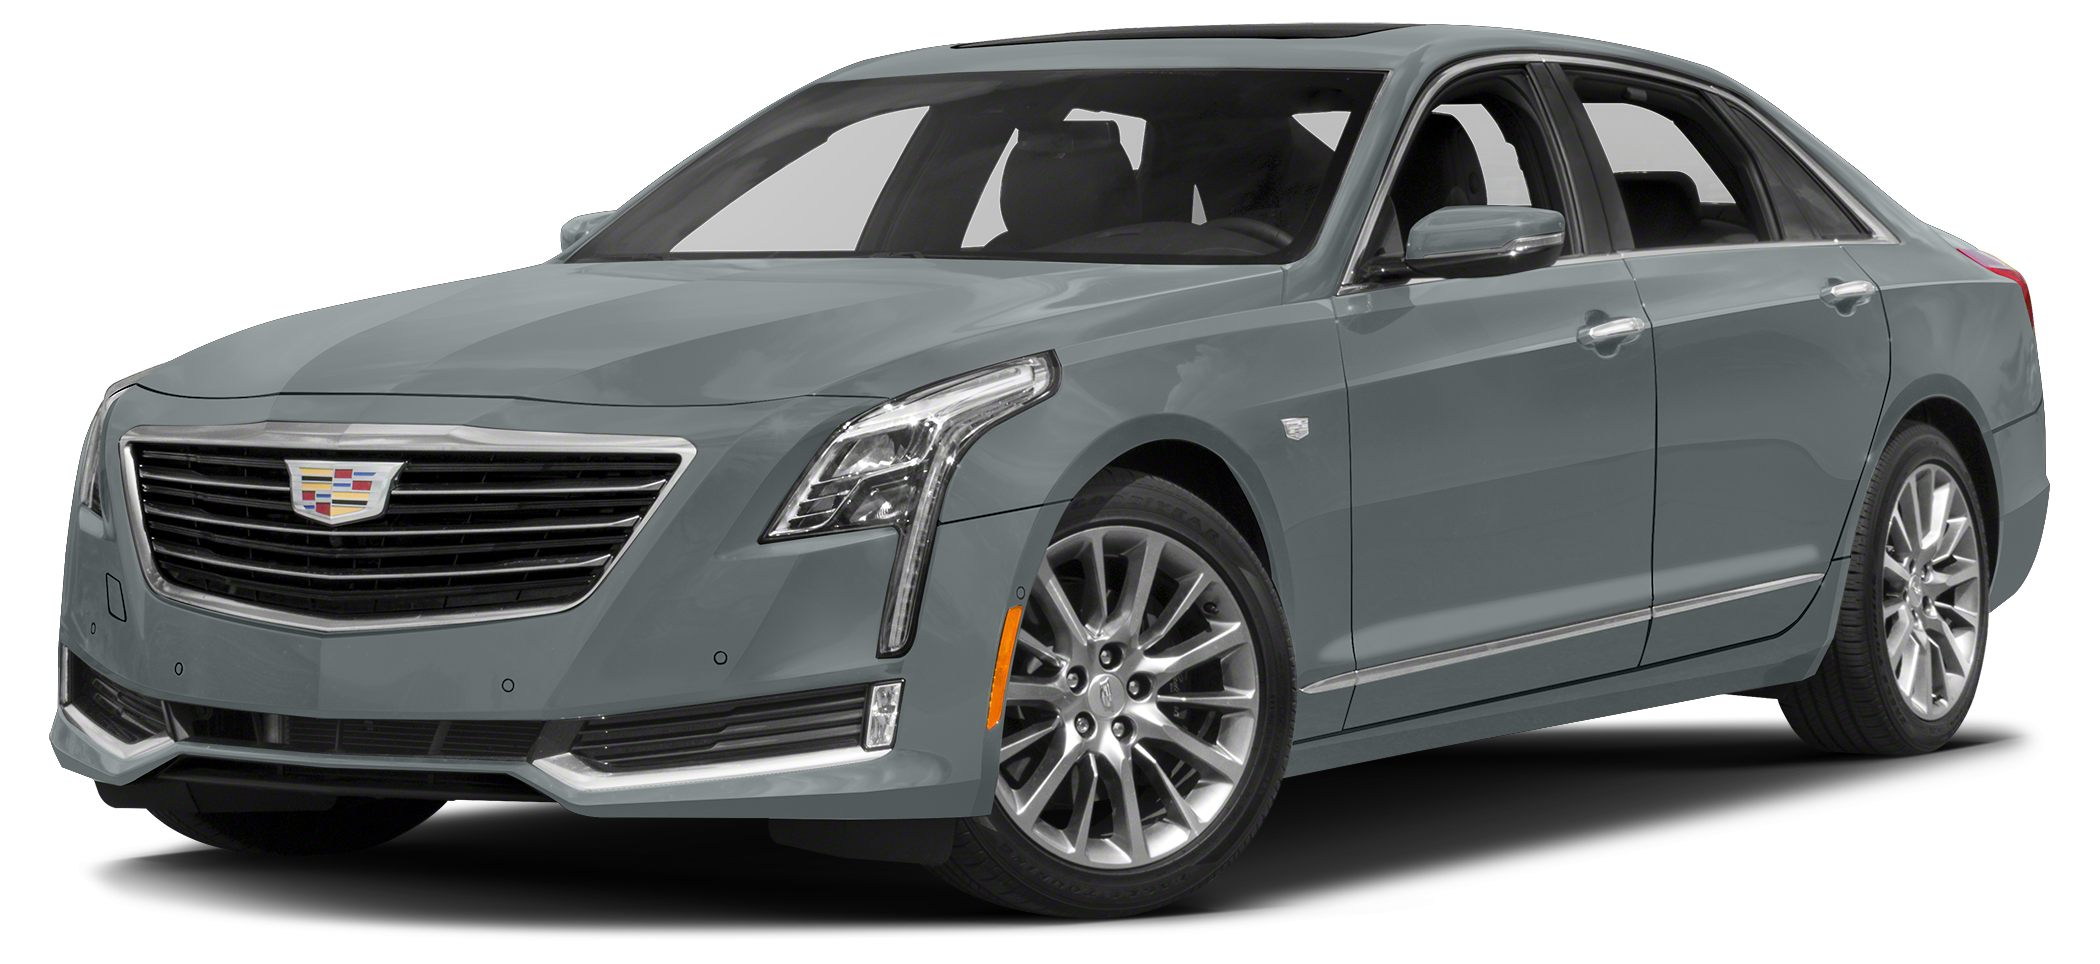 2018 Cadillac CT6 36 Luxury Finance Offers based on MSRP2018 Cadillac CT6 Luxury AWD 4dr AWD Sed